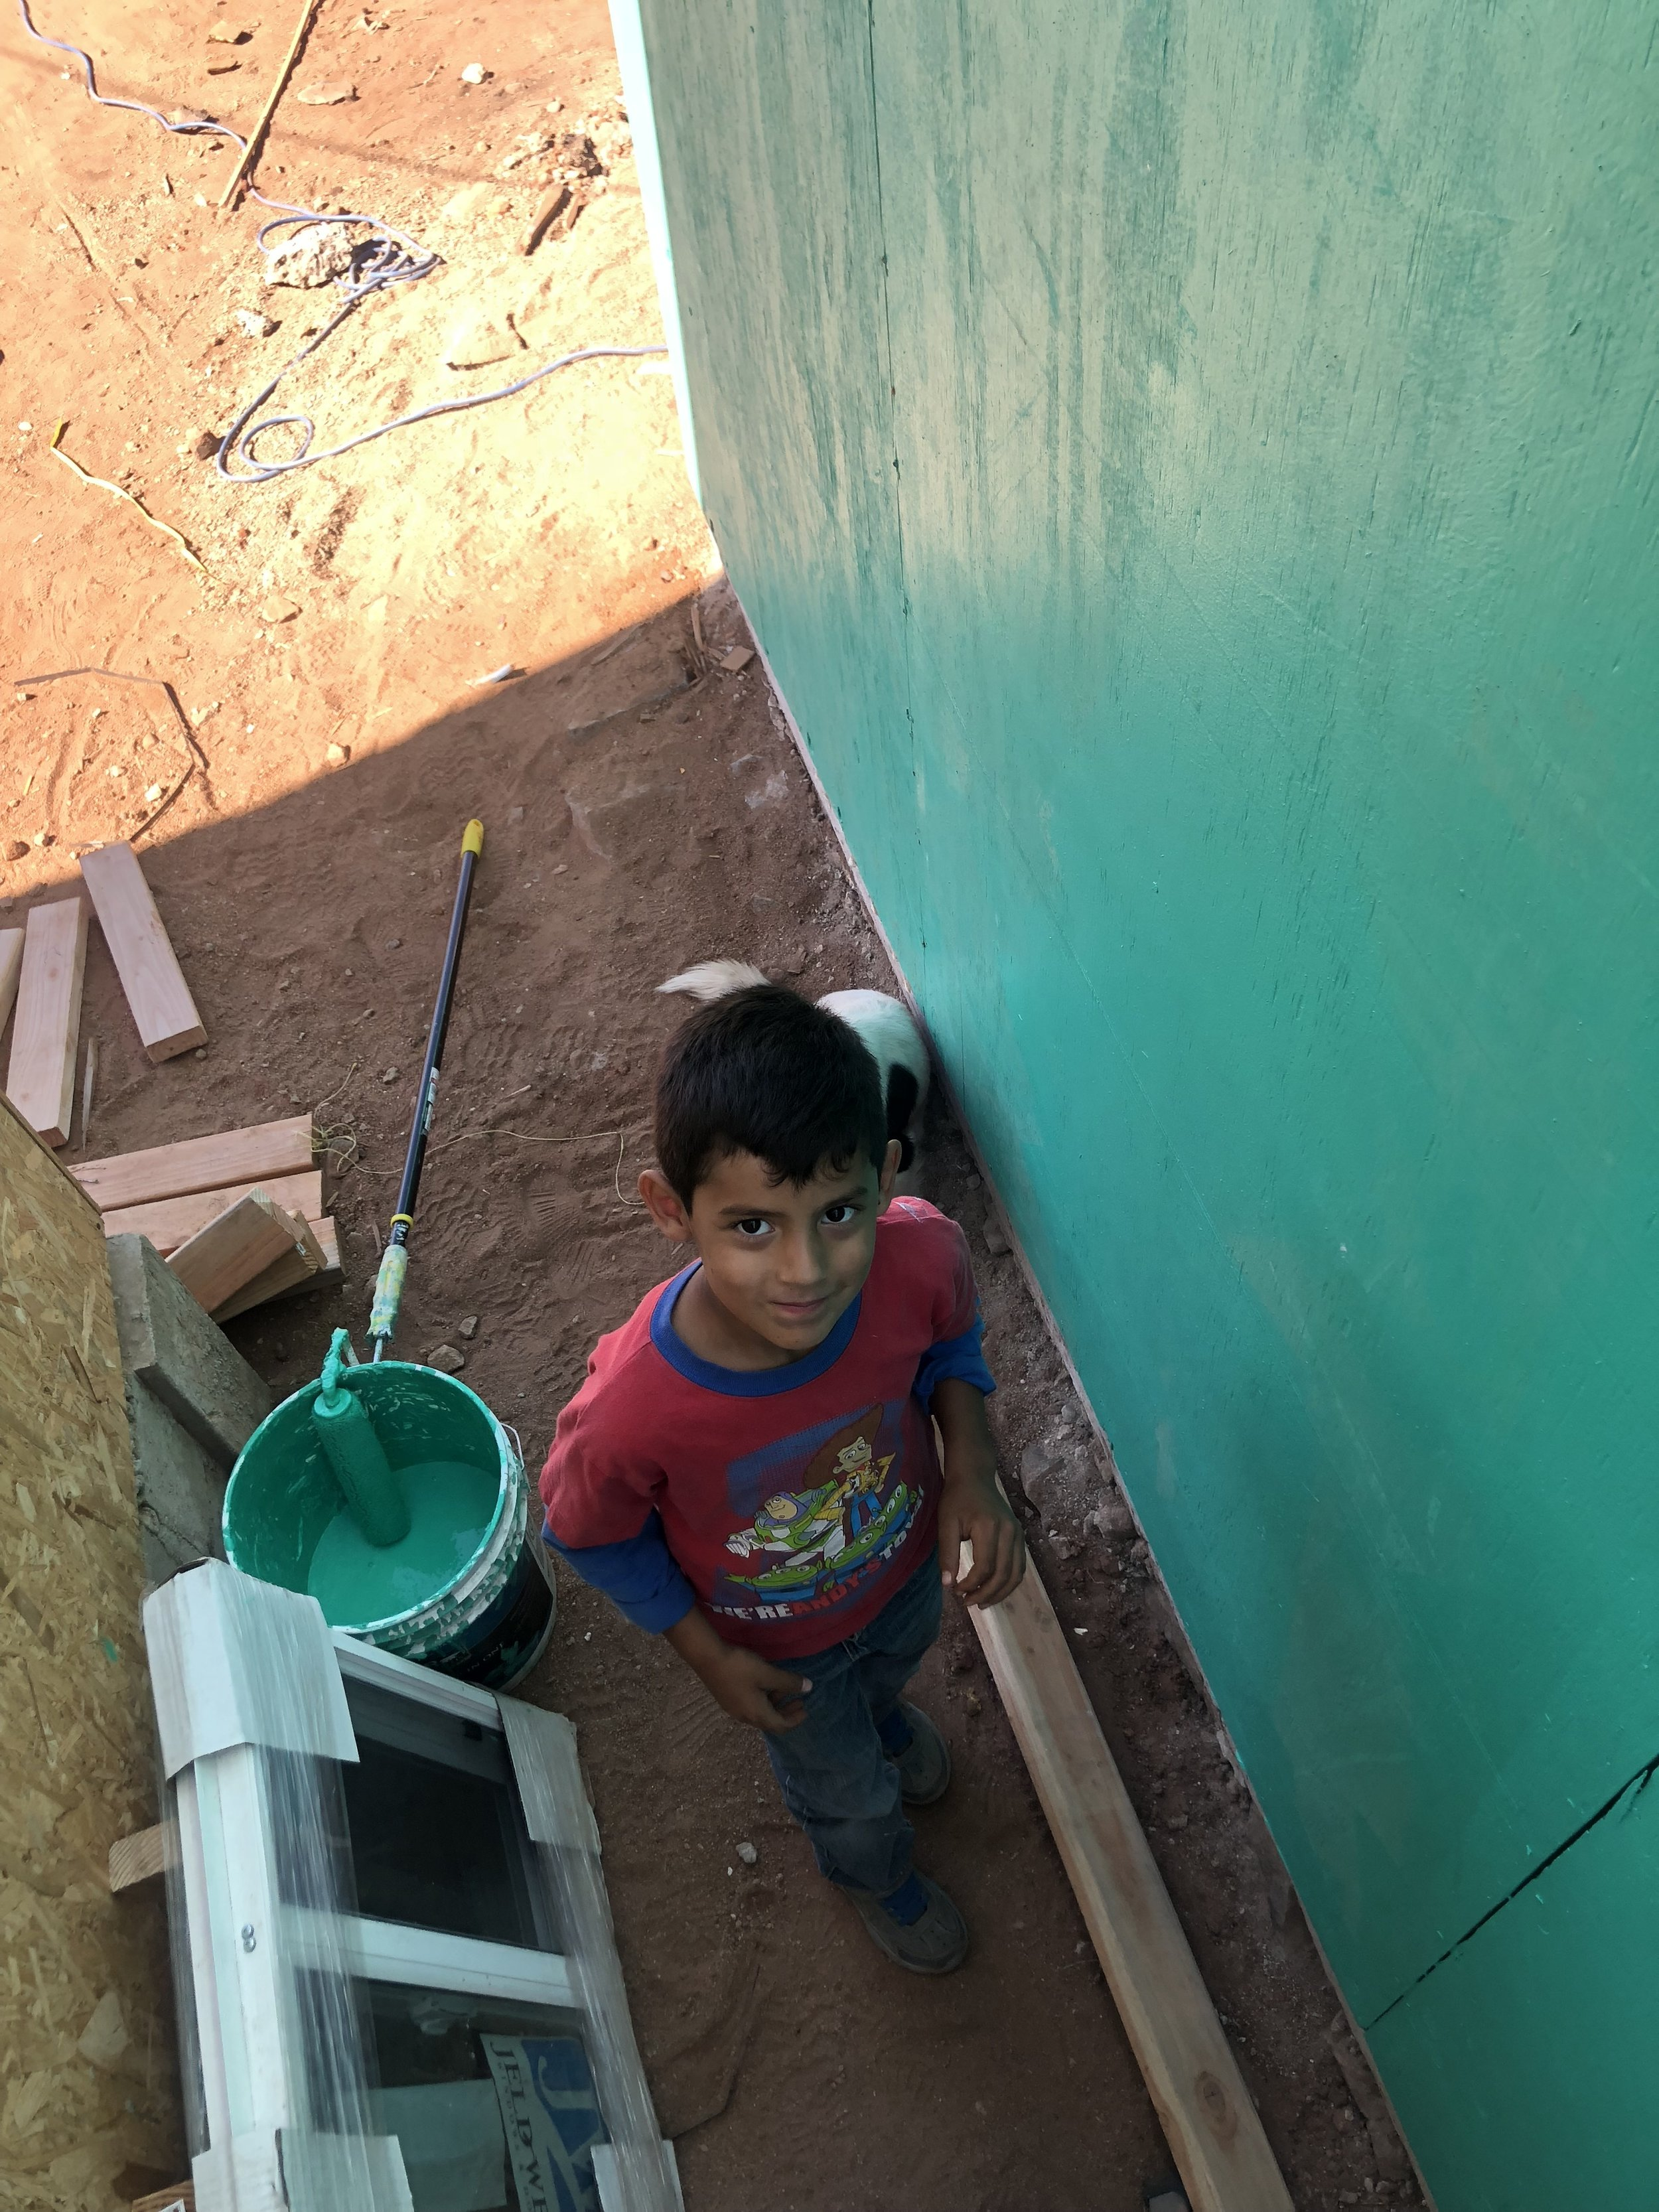 He kept coming over trying to help me paint. I adored him! My Spanish is not too good so the language barrier was tough to converse, especially with a child, but the love and positivity we exchanged was an absolute universal language.